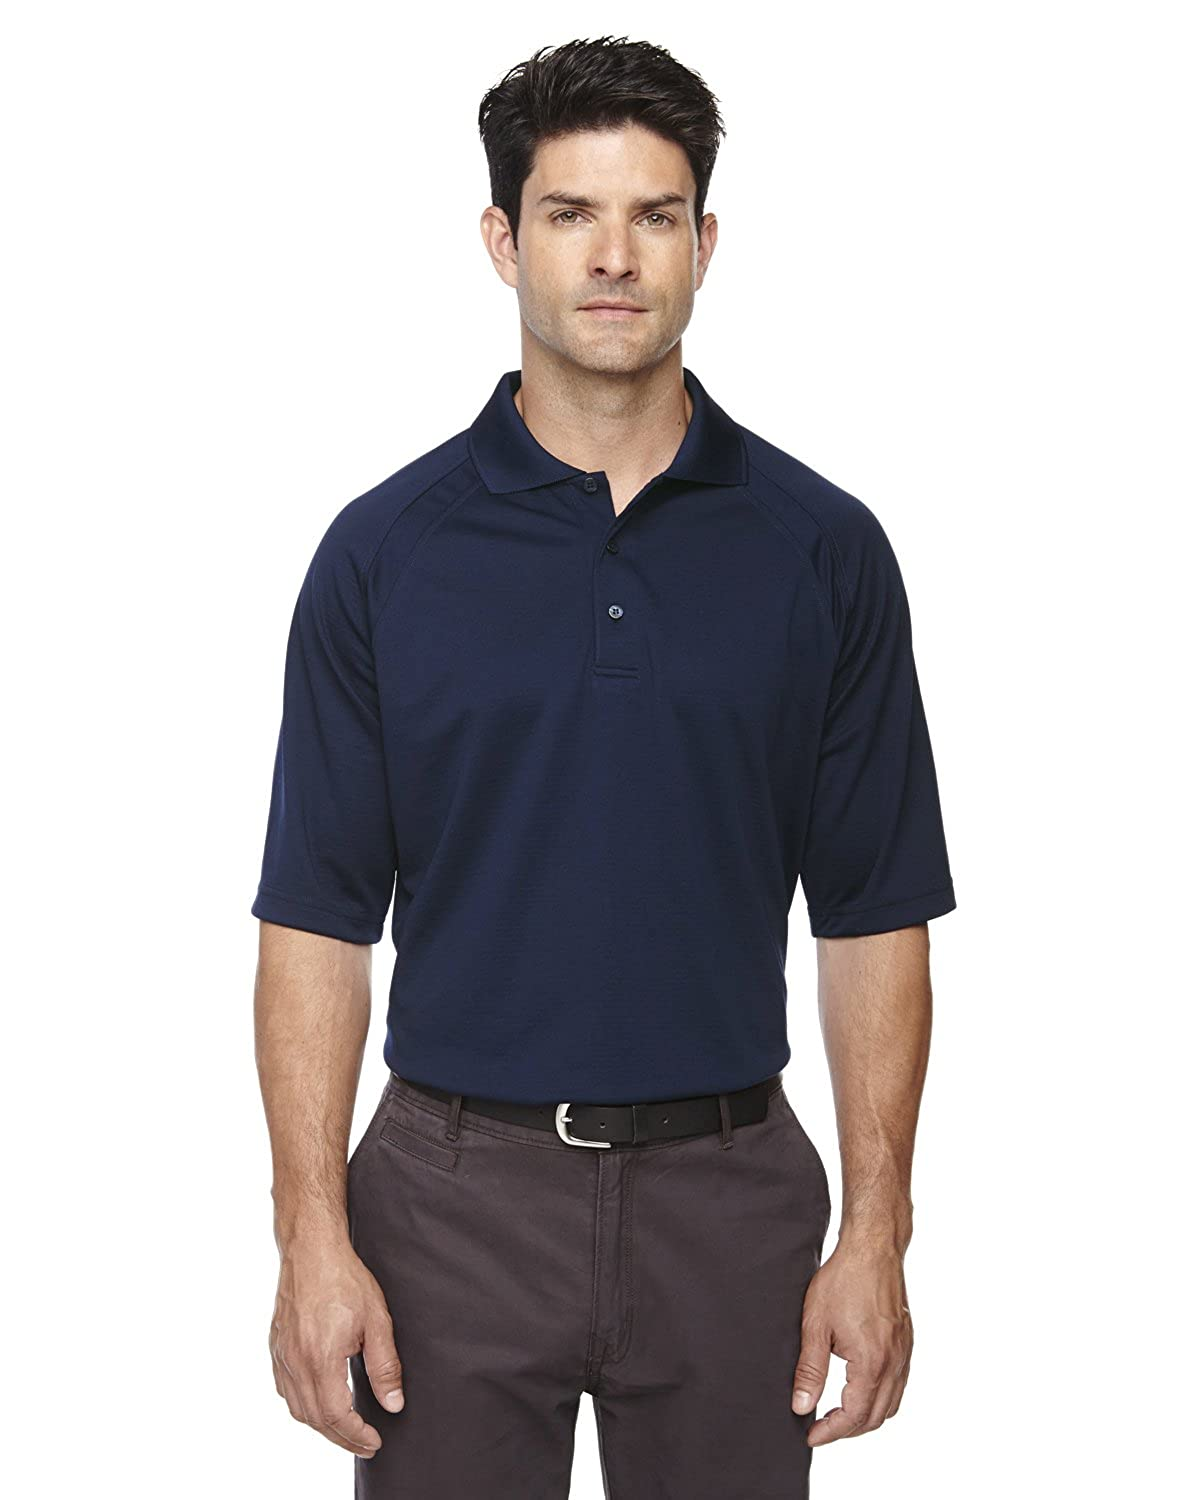 Ash City Extreme 85093 MENS EPERFORMANCE OTTOMAN TEXTURED POLO